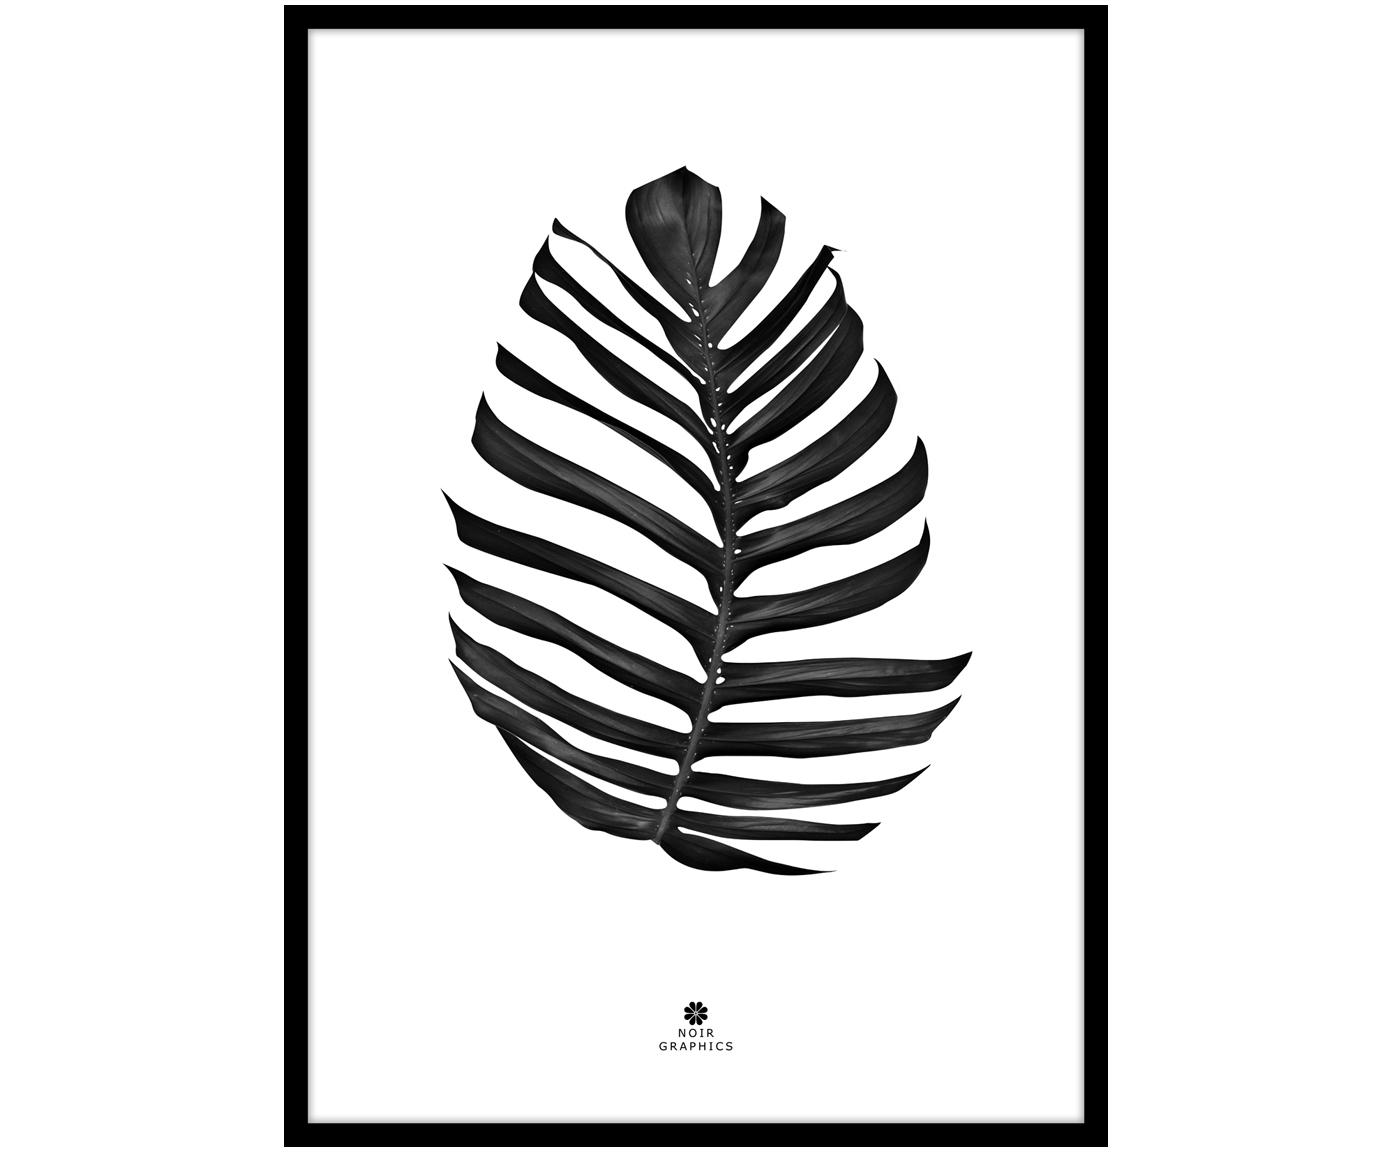 Stampa digitale incorniciata Jungle Leaf Black, Immagine: stampa digitale su carta , Cornice: Pannello di fibra ad alta, Nero, bianco, Larg. 30 x Alt. 40 cm